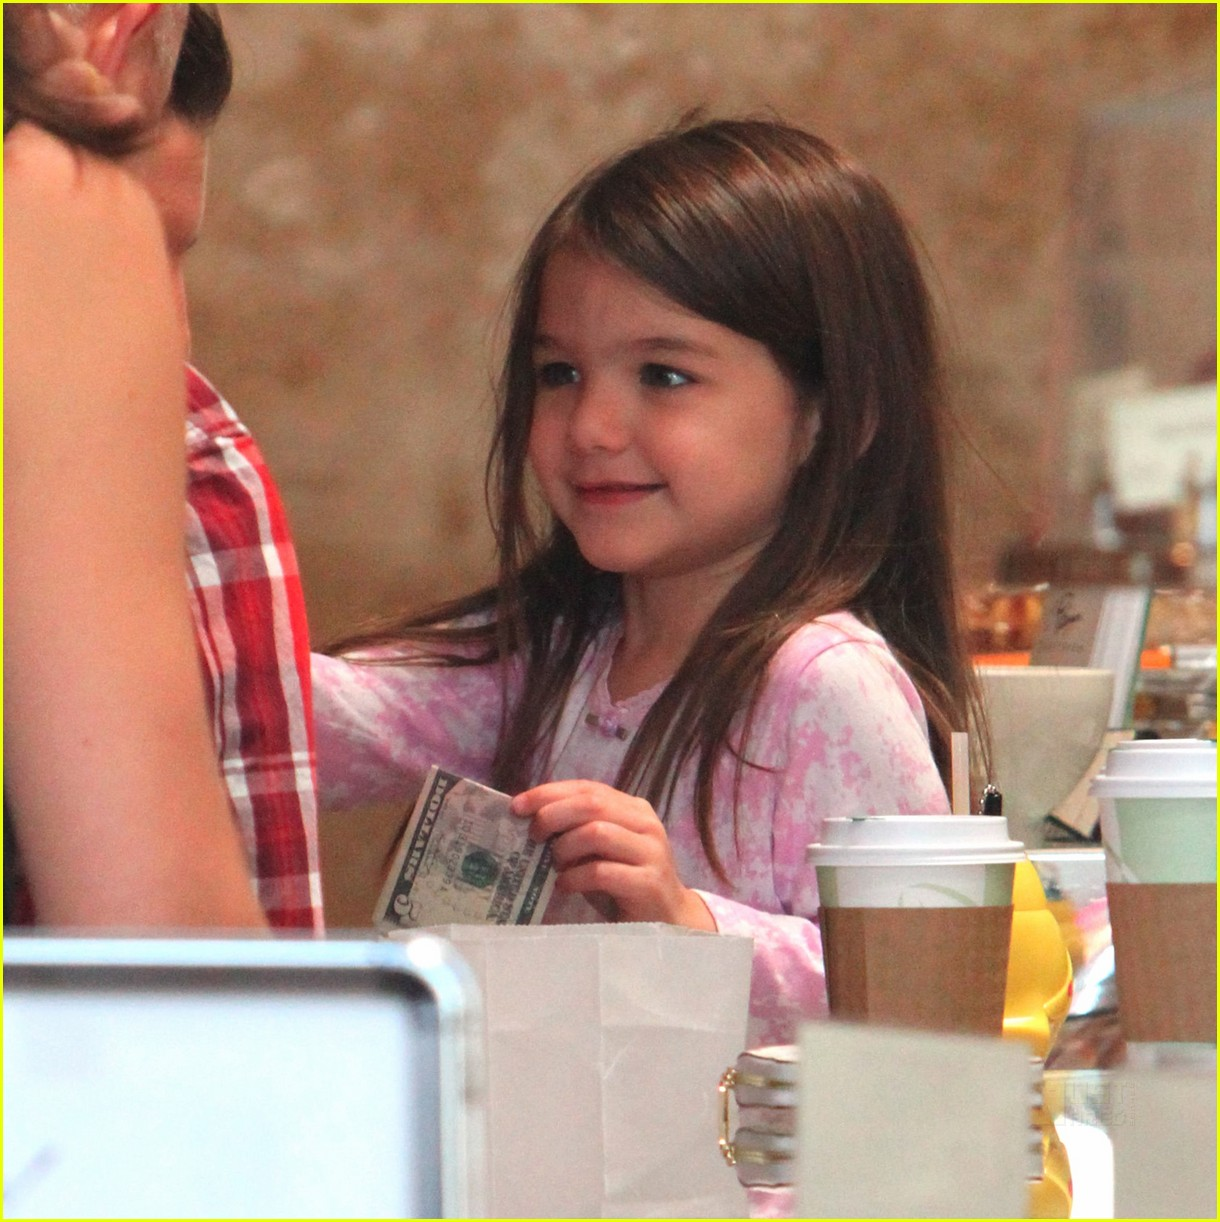 http://4.bp.blogspot.com/_ay-3_gDCcvY/TPZrvj9lccI/AAAAAAAACRM/5nrH6sRgCUI/s1600/katie-holmes-suri-cruise-le-pain-quotidien-03.jpg